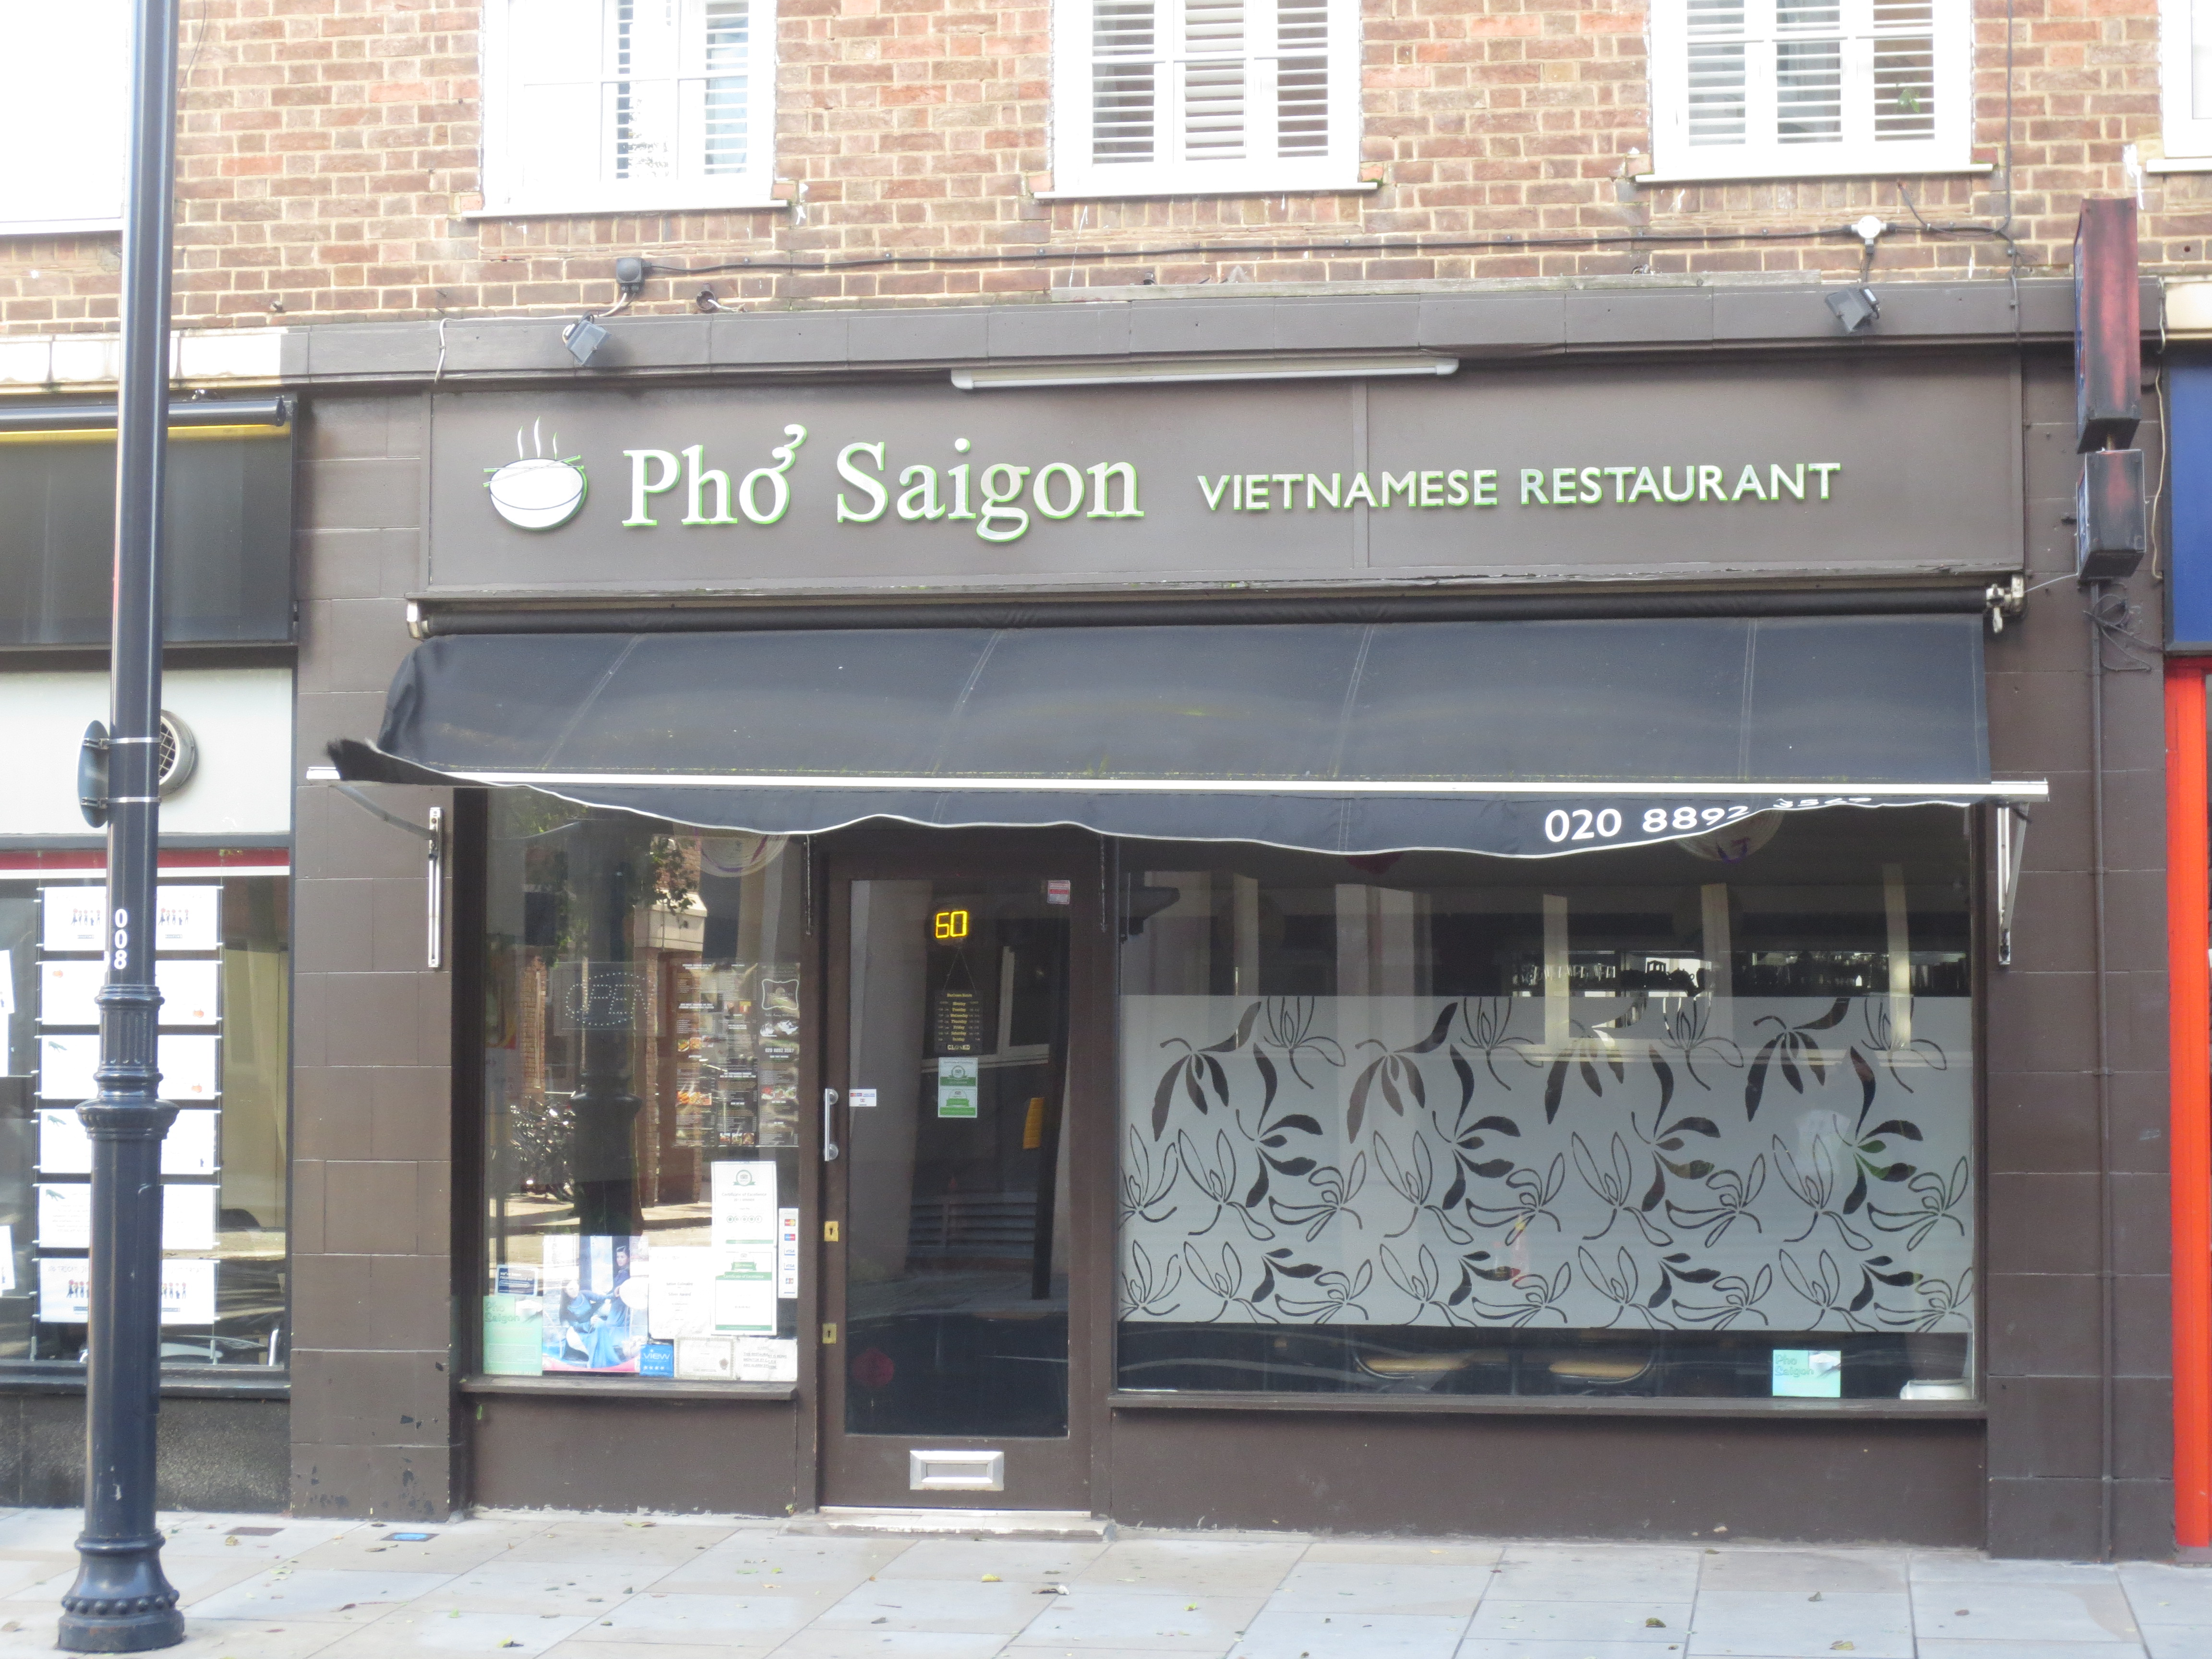 Restaurant Review: Pho Saigon, Twickenham